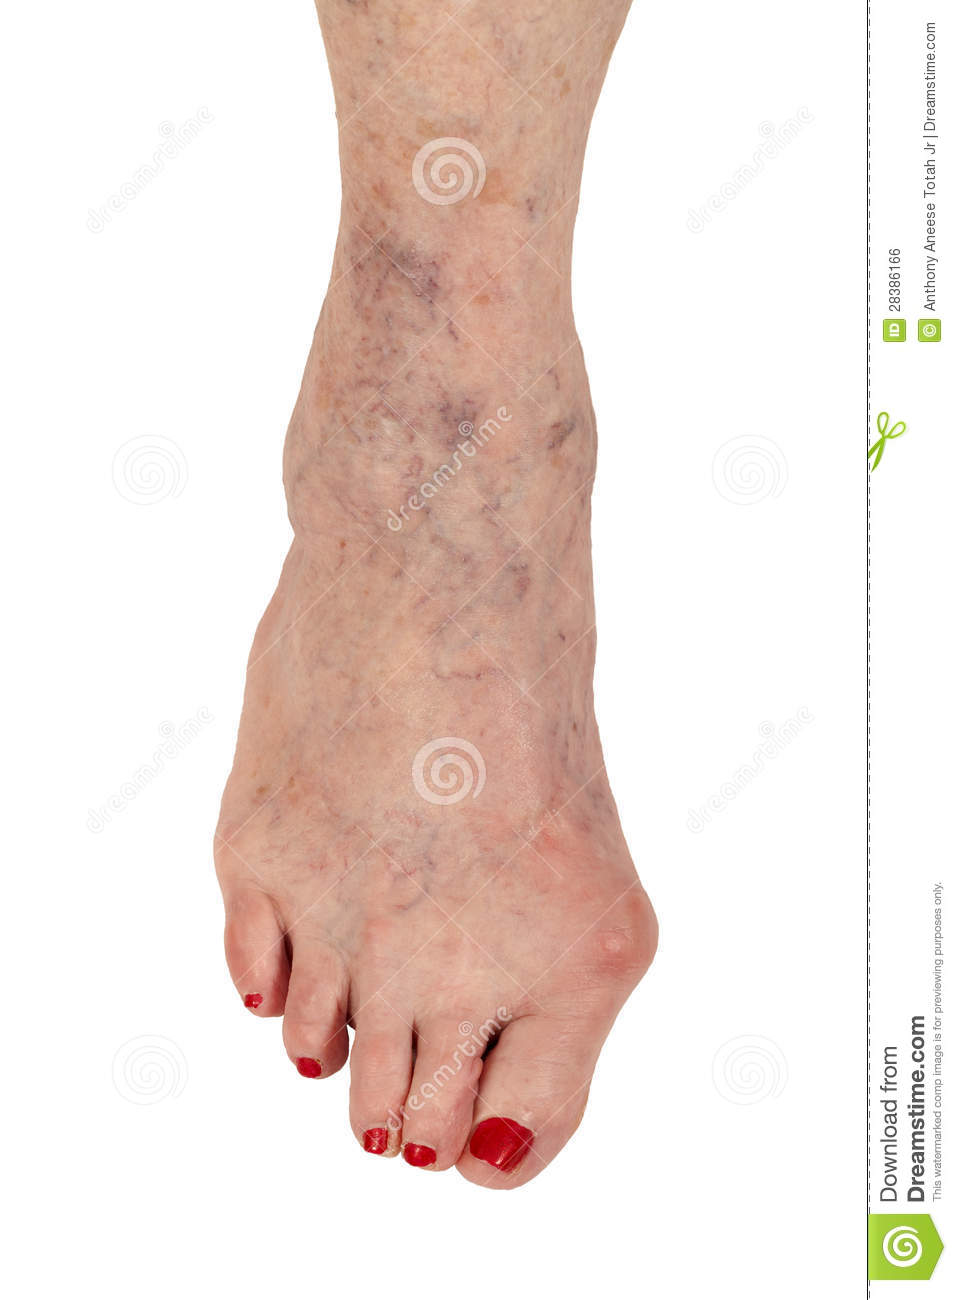 Medical: Rheumatoid Arthritis, Hammer Toe And Varicose ...